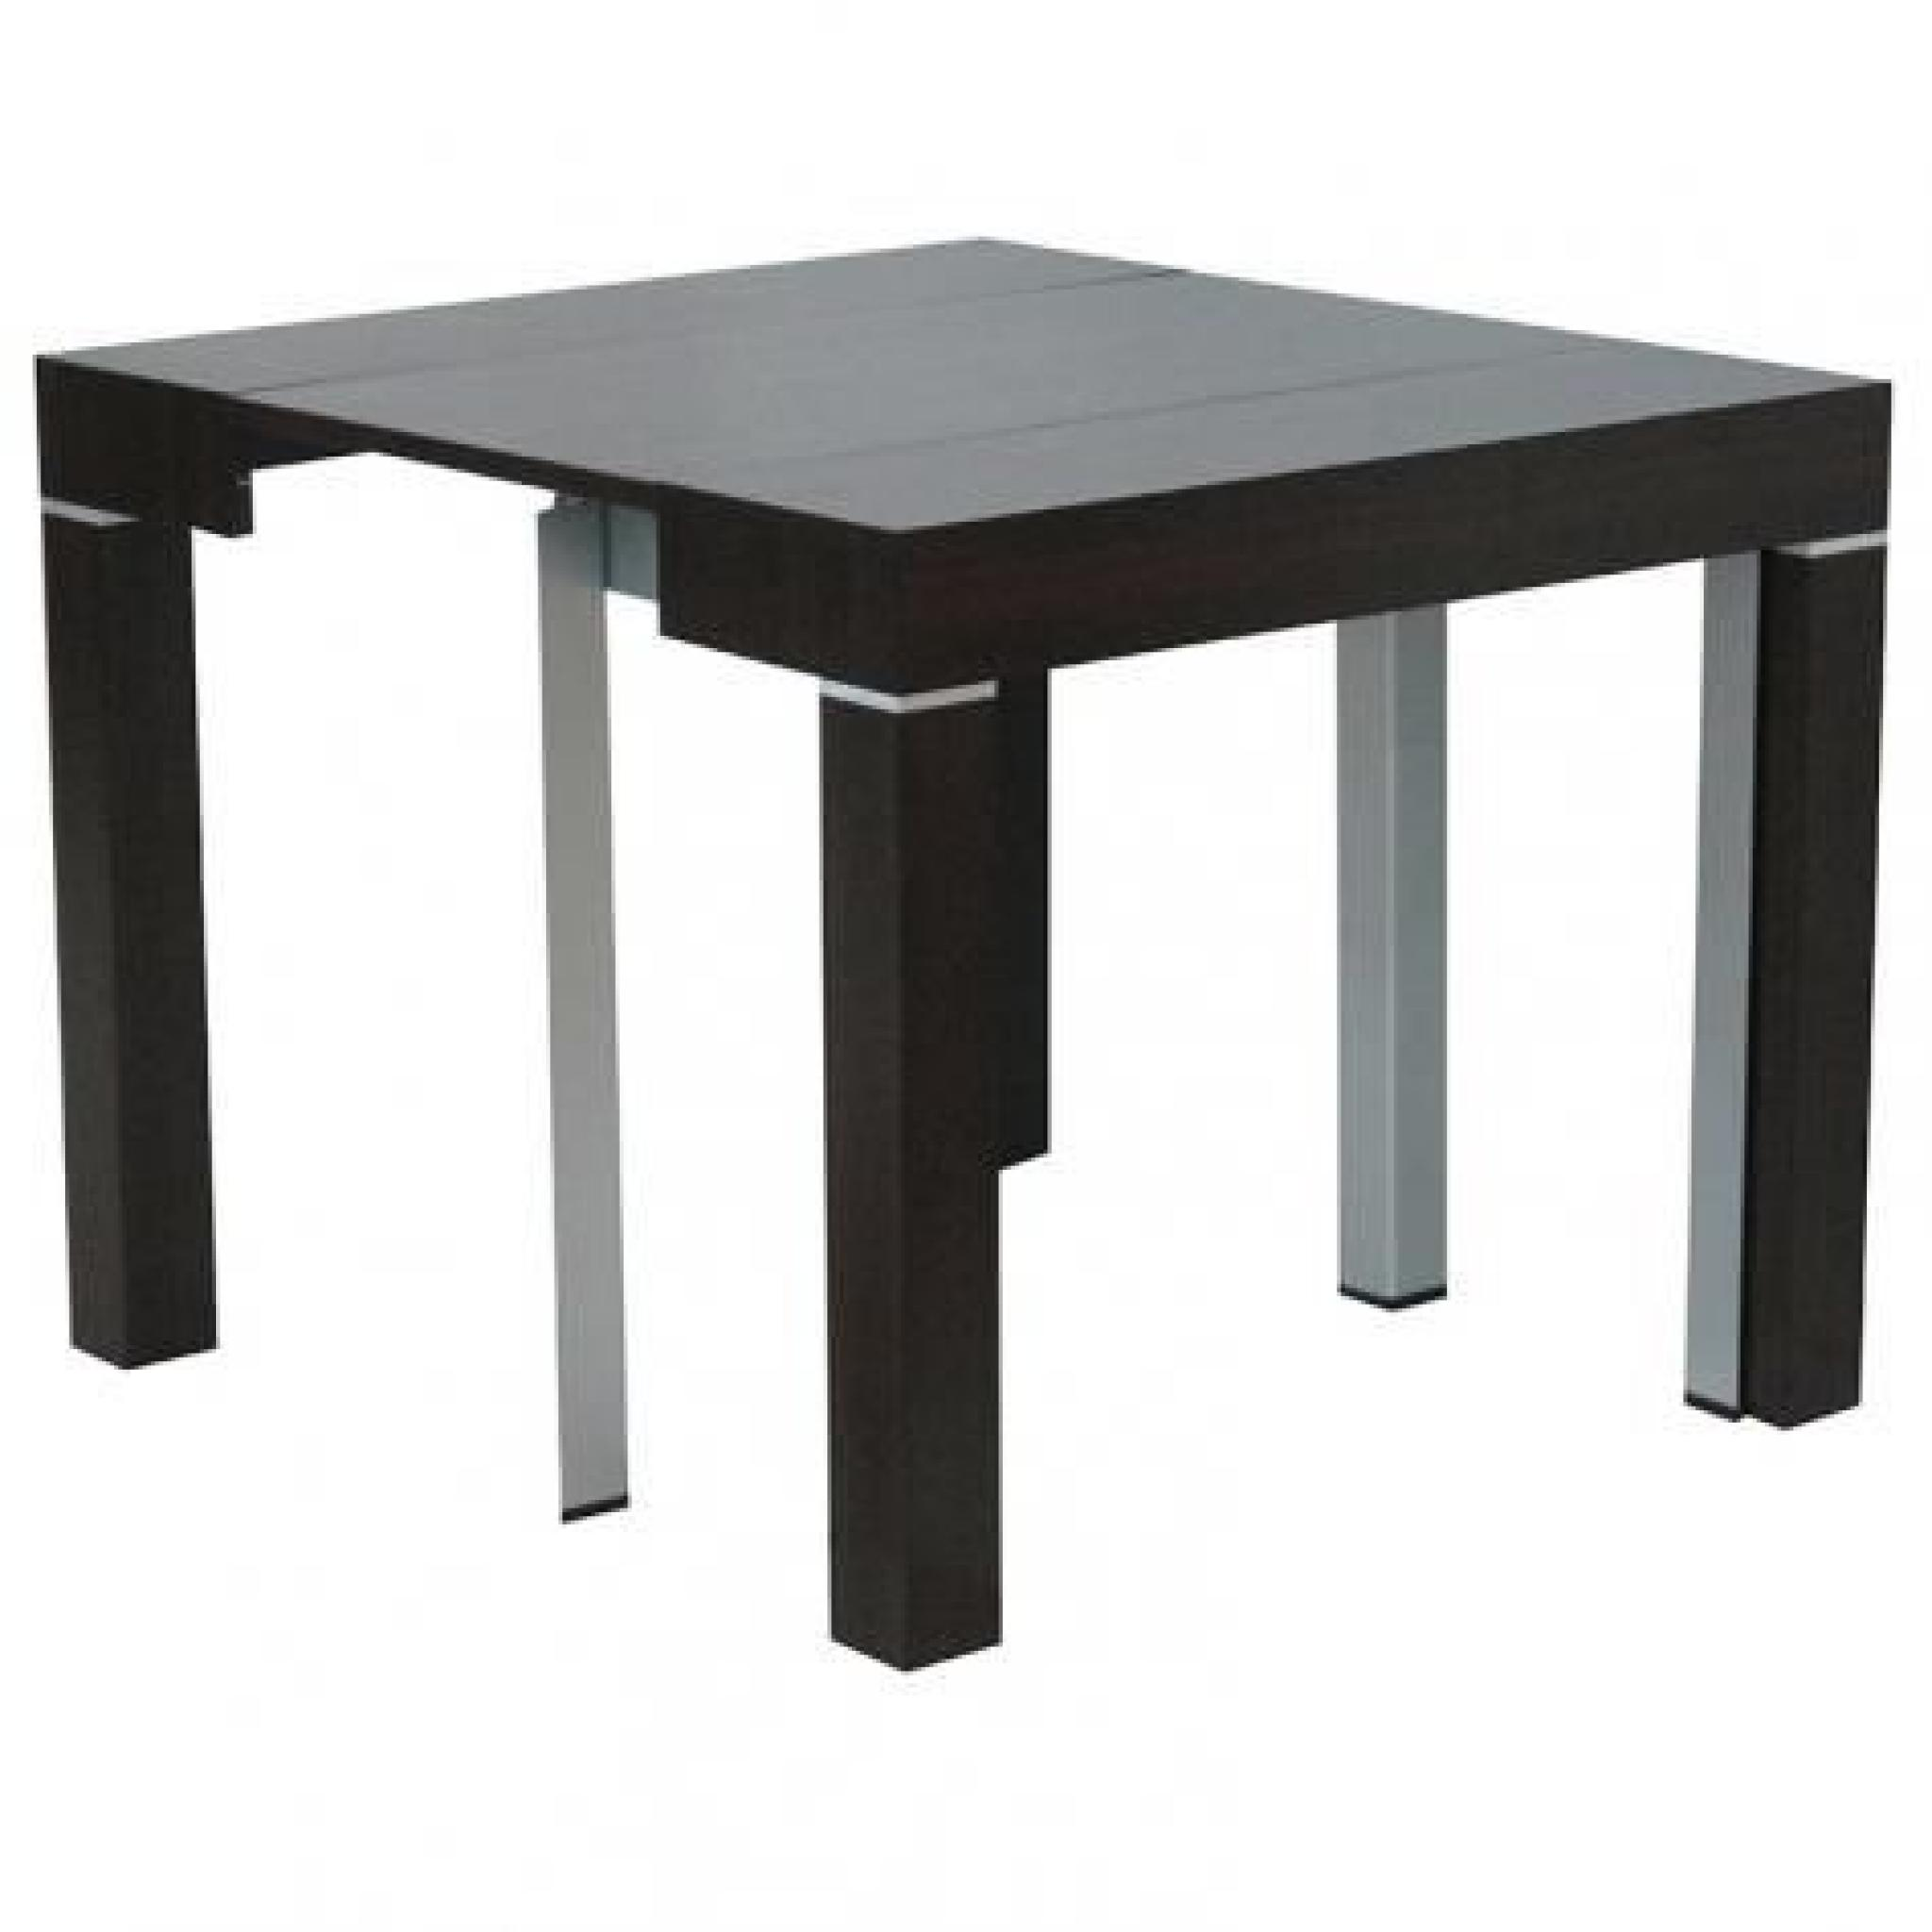 table console extensible conforama nouveaux mod les de maison. Black Bedroom Furniture Sets. Home Design Ideas